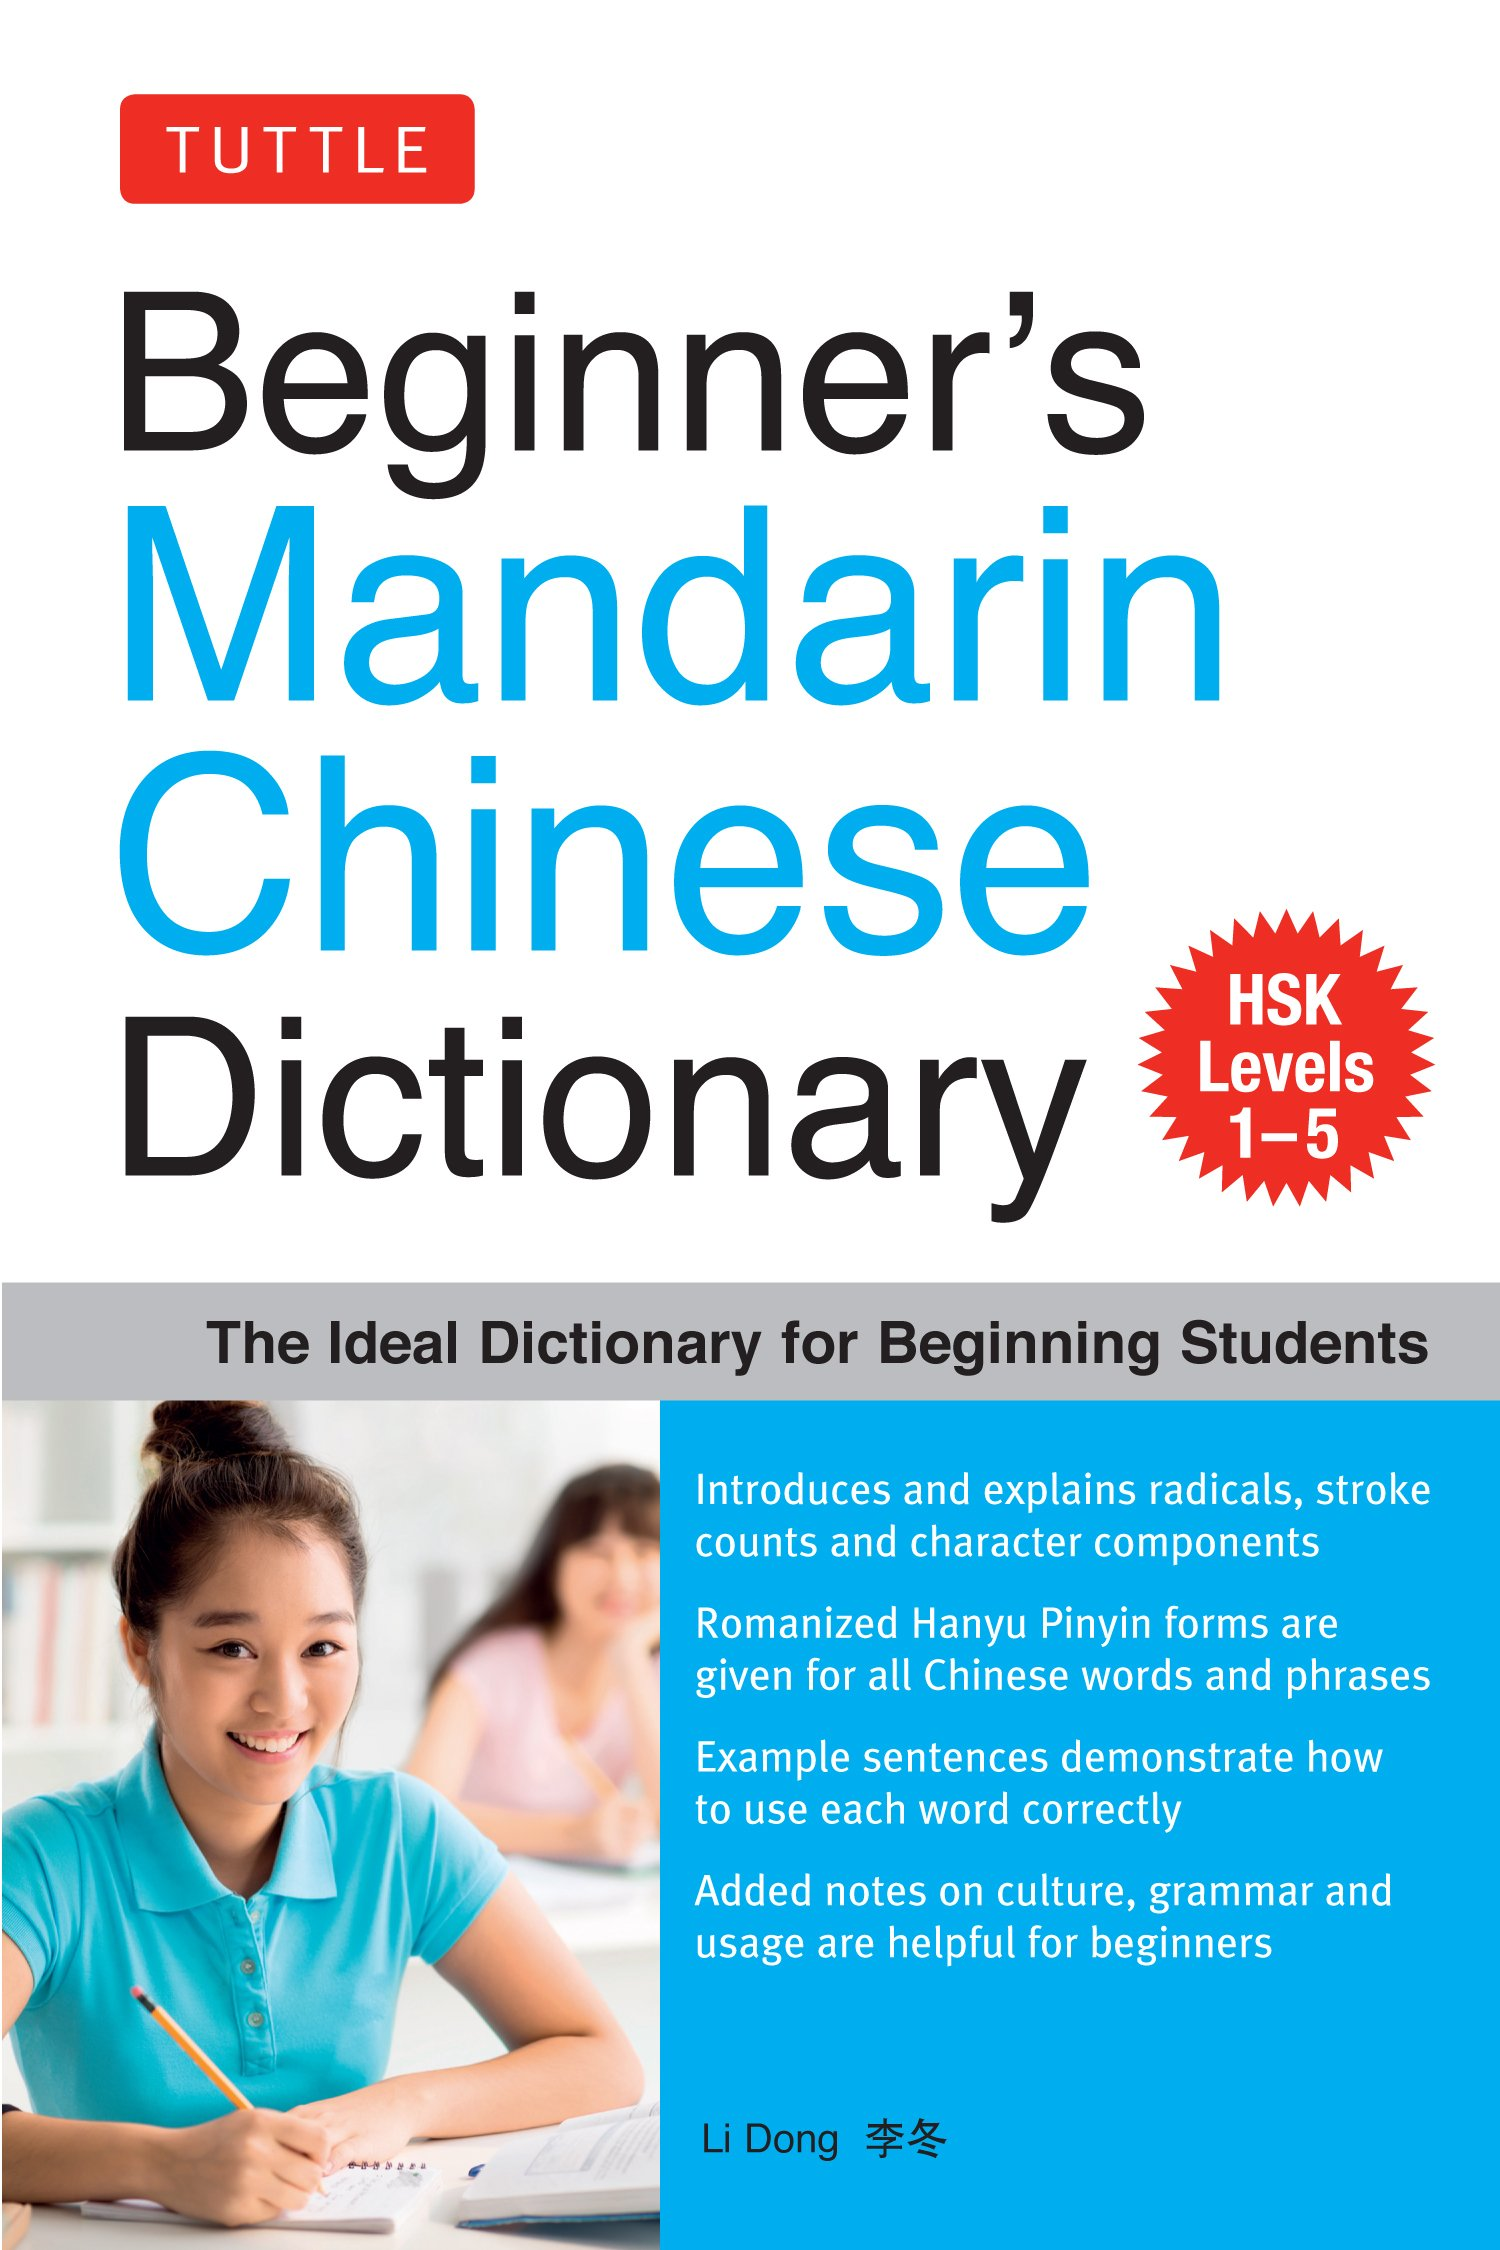 Read Online Beginner's Mandarin Chinese Dictionary: The Ideal Dictionary for Beginning Students [HSK Levels 1-5, Fully Romanized] PDF